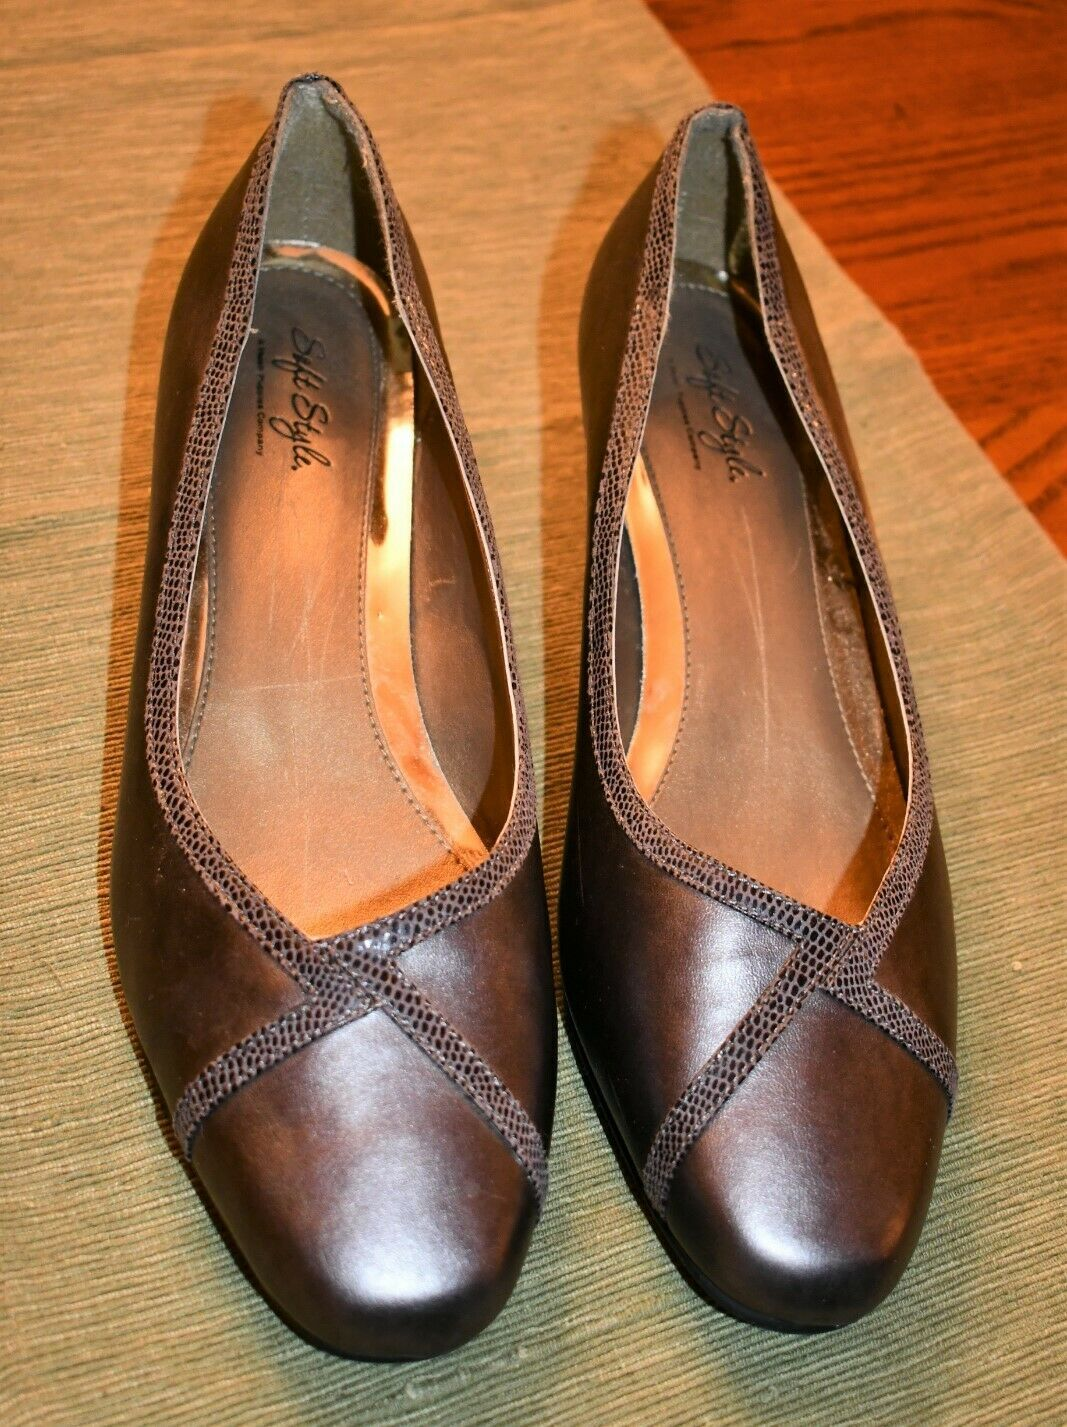 Womens Soft Style A Hush Puppies Company Size 11 Ew Shoes Item 61 In 2020 Hush Puppies Shoes Women